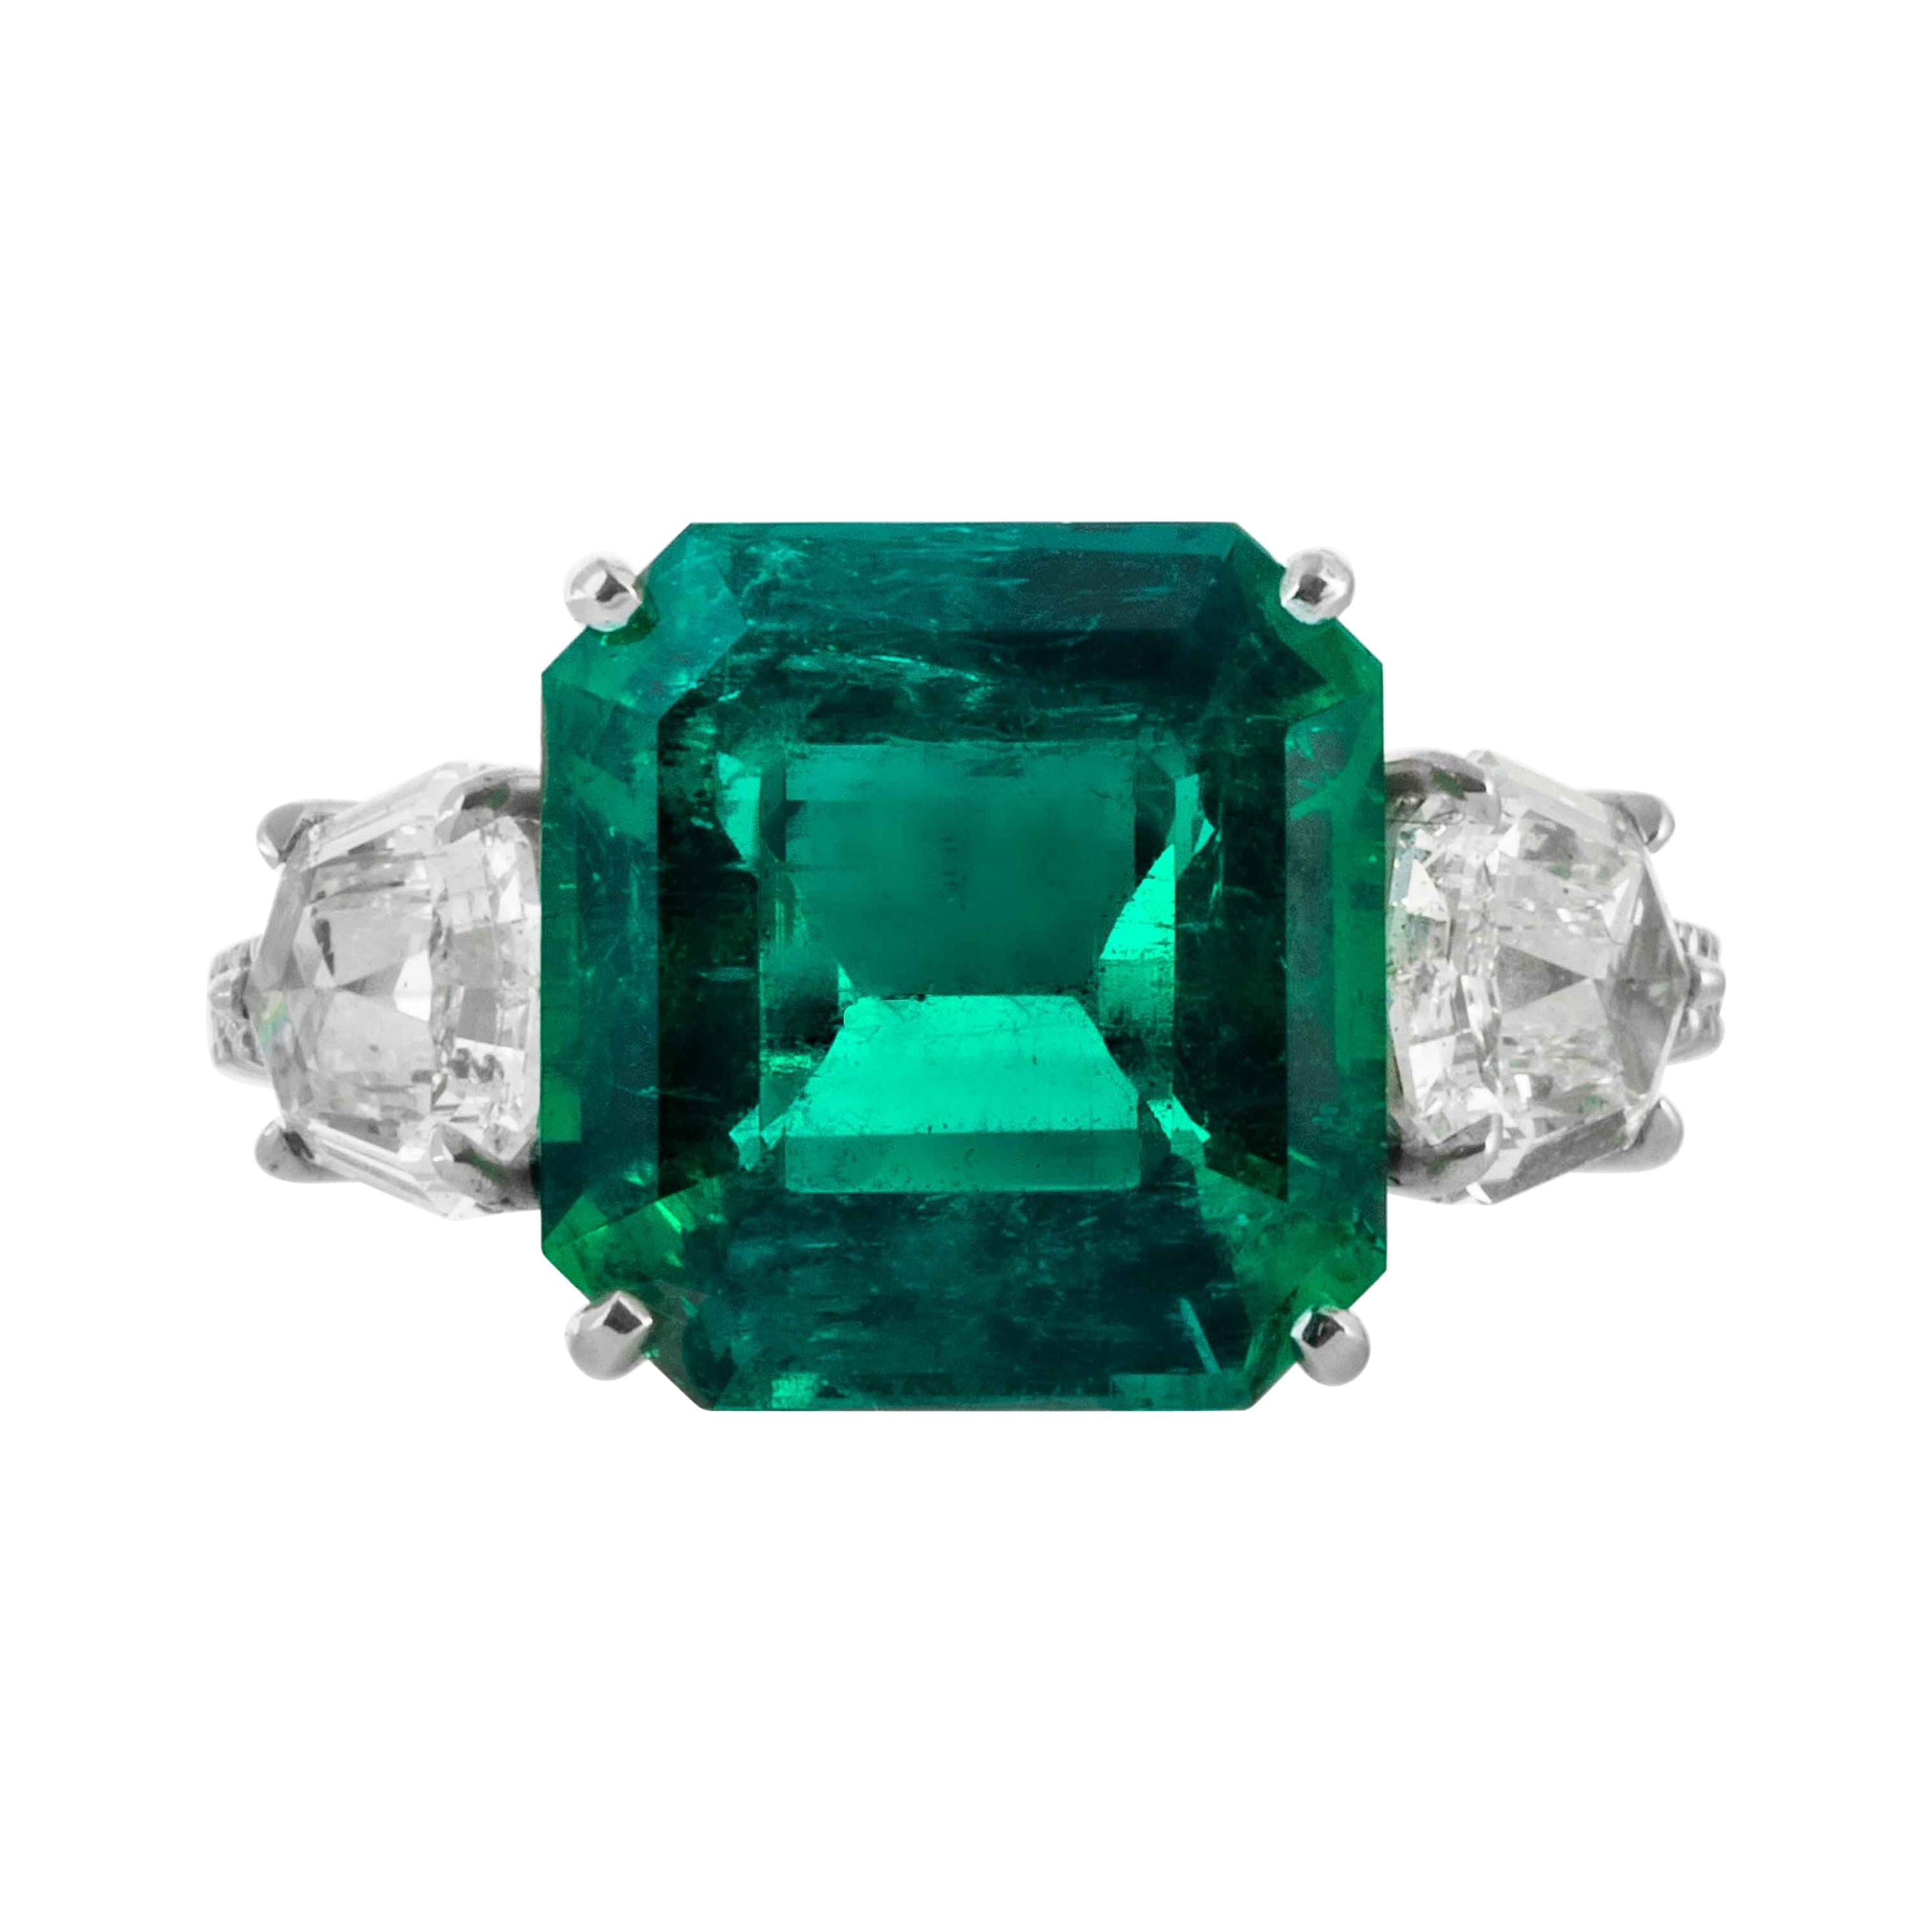 Shreve, Crump & Low 5.48 Carat Colombian Emerald and Diamond White Gold Ring